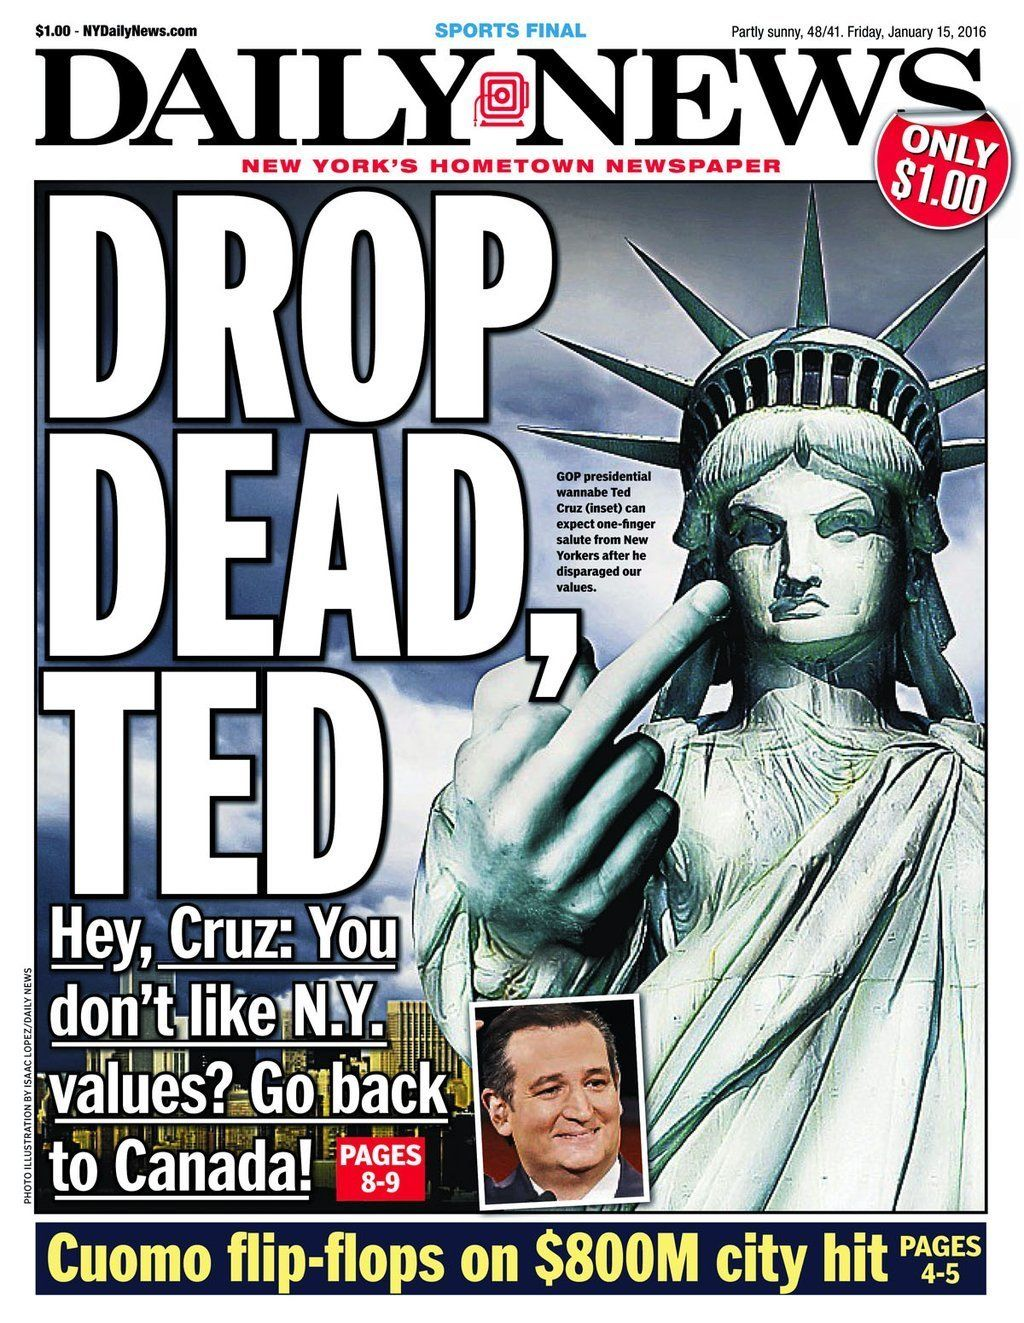 The New YorkDaily News has a pointed message for Ted Cruz, withLady Liberty herself flipping off the GOP presiden